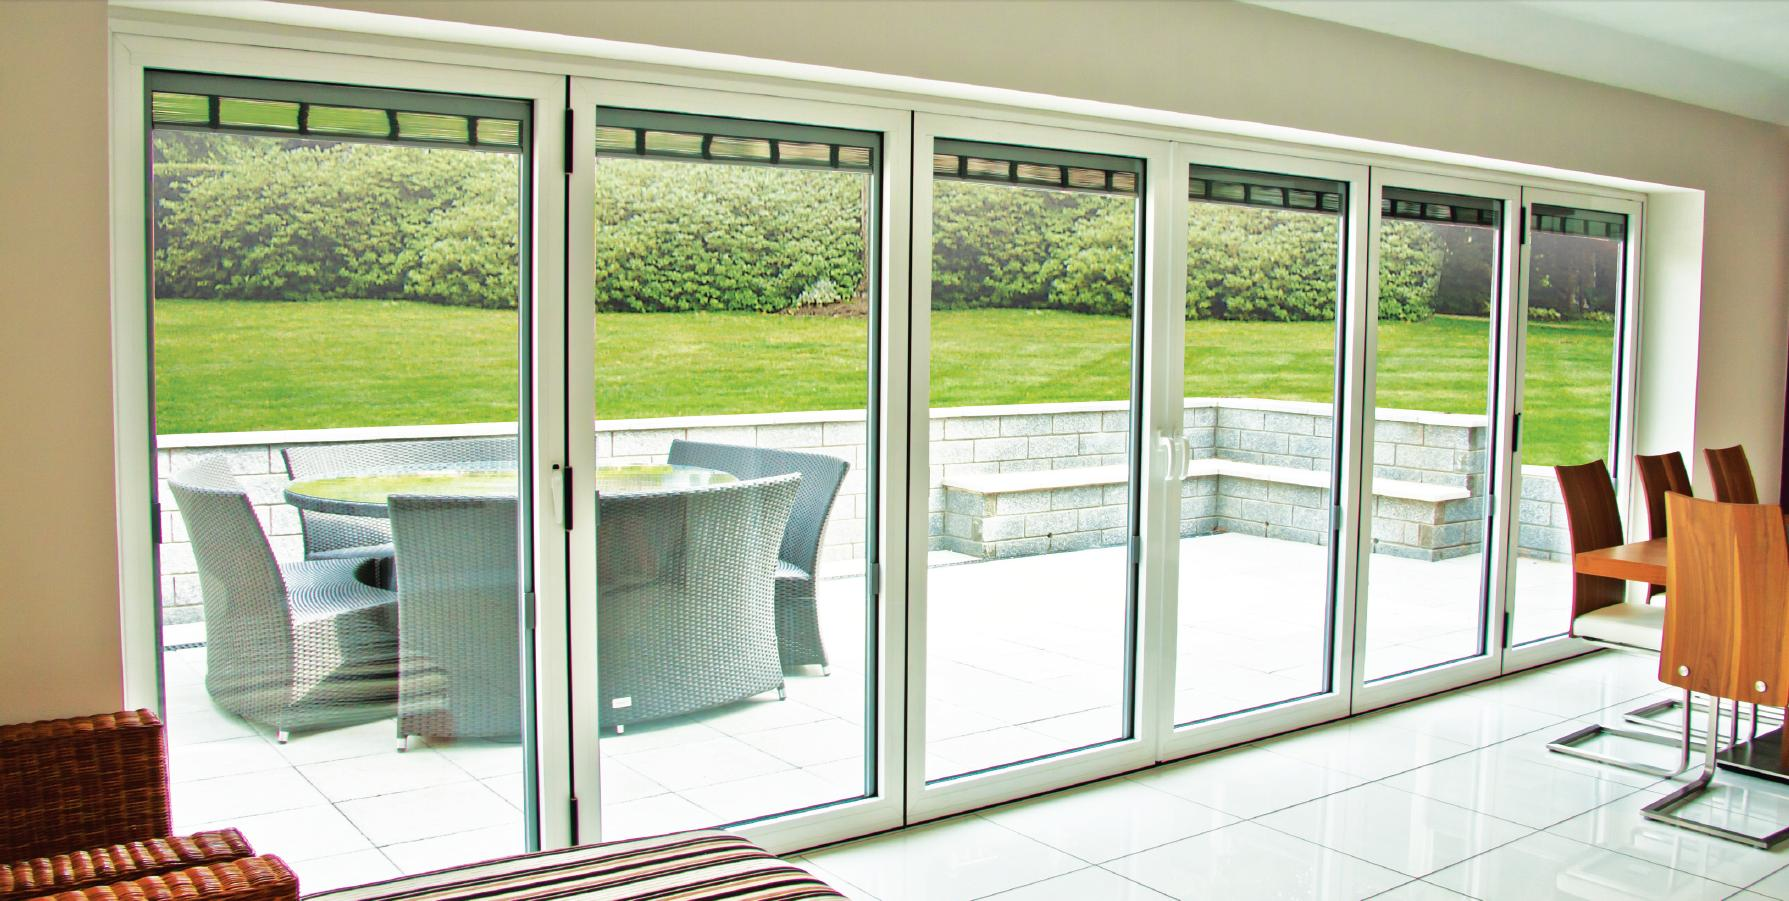 Folding Bifold Doors : Folding door design ideas interior exterior